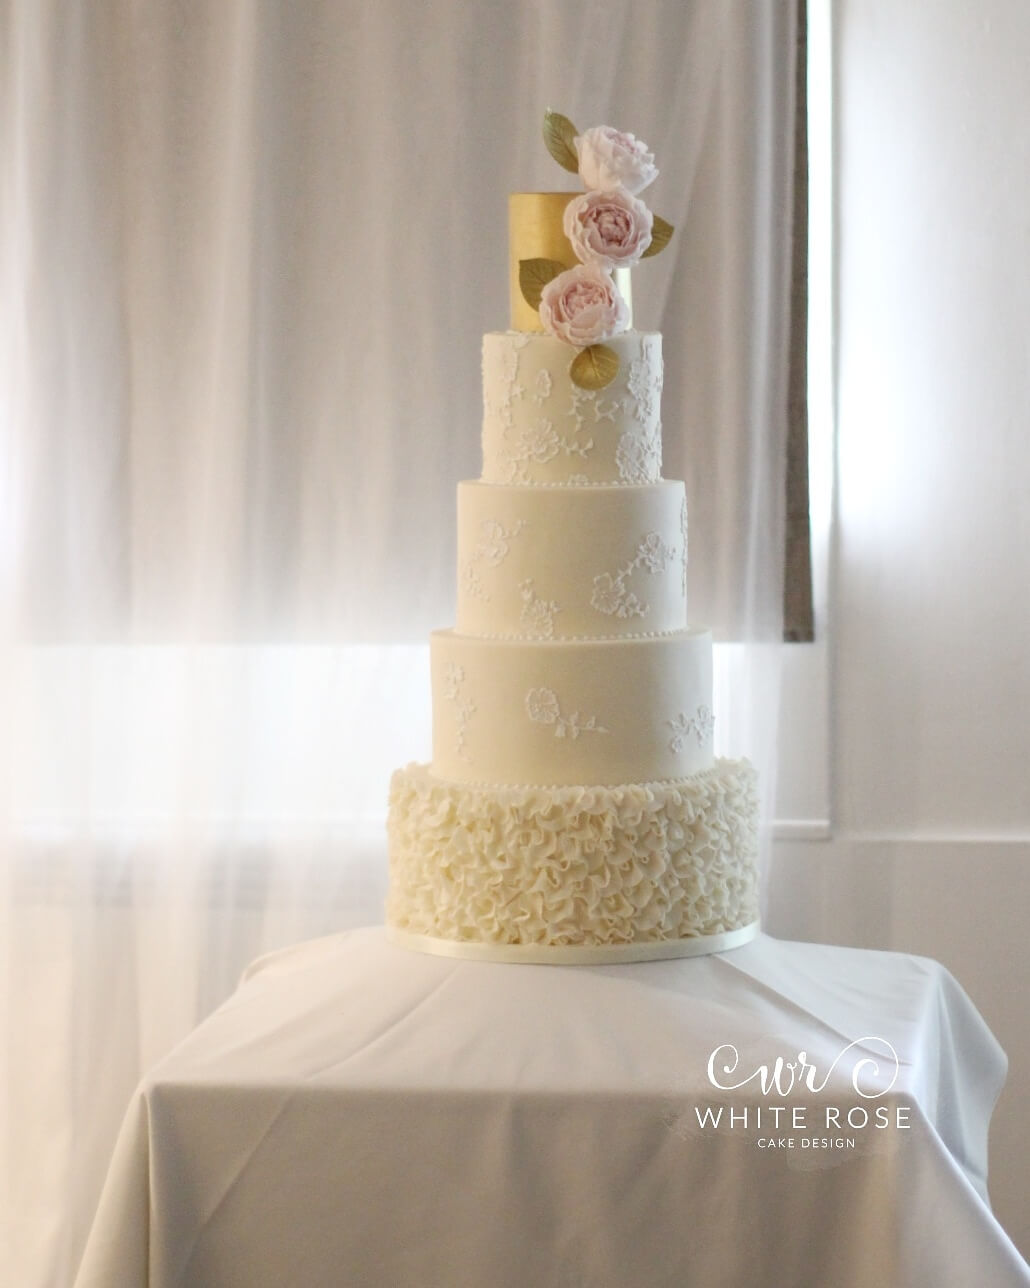 Five Tier Gold and Lace Wedding Cake with Ruffles and Peonies by White Rose Cake Design Luxury Wedding Cakes West Yorkshire